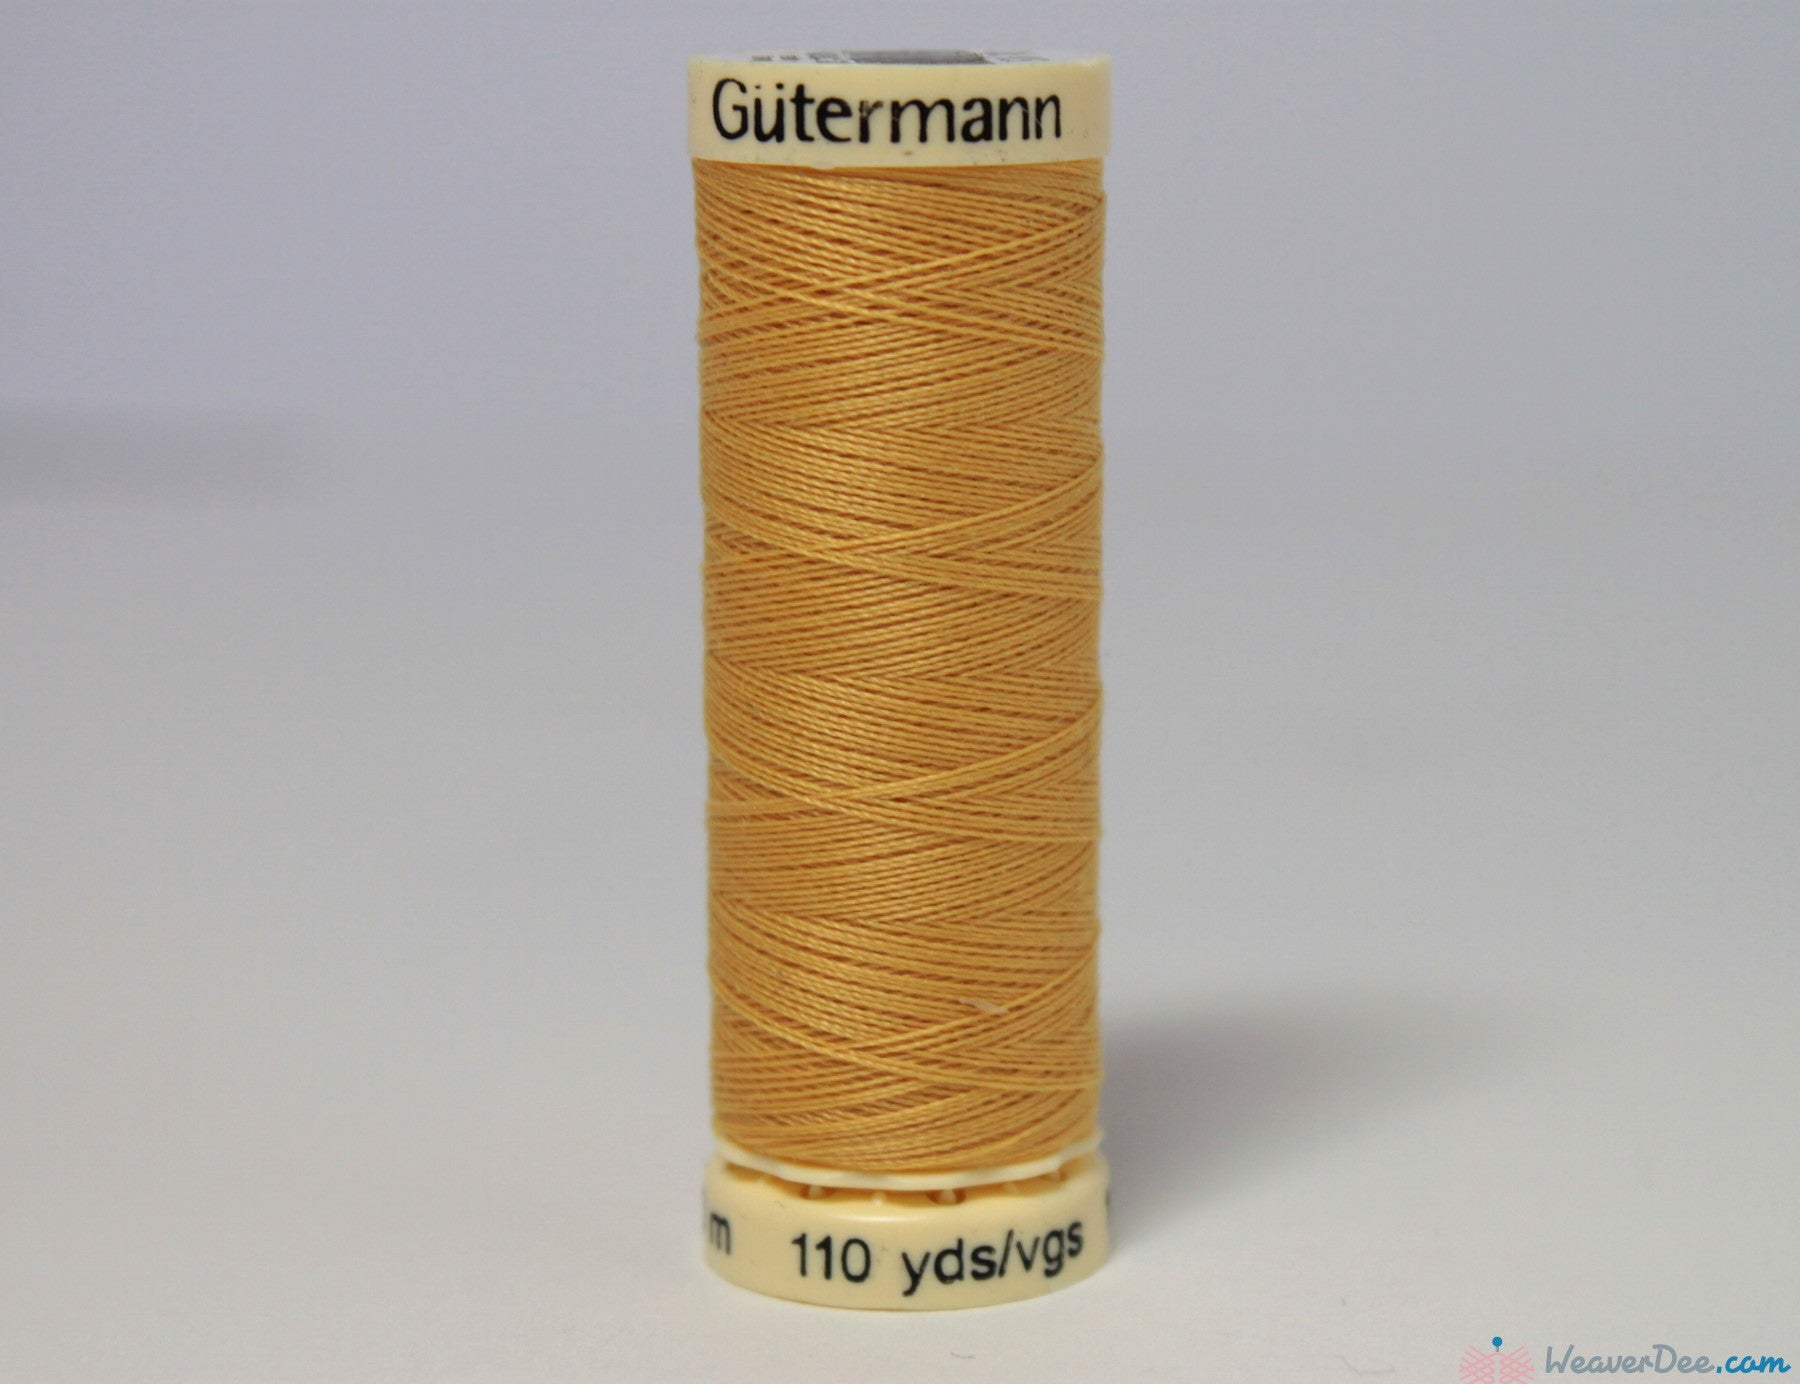 Gütermann - Sew-All Polyester Sewing Thread [415 Yellow] - WeaverDee.com Sewing & Crafts - 1